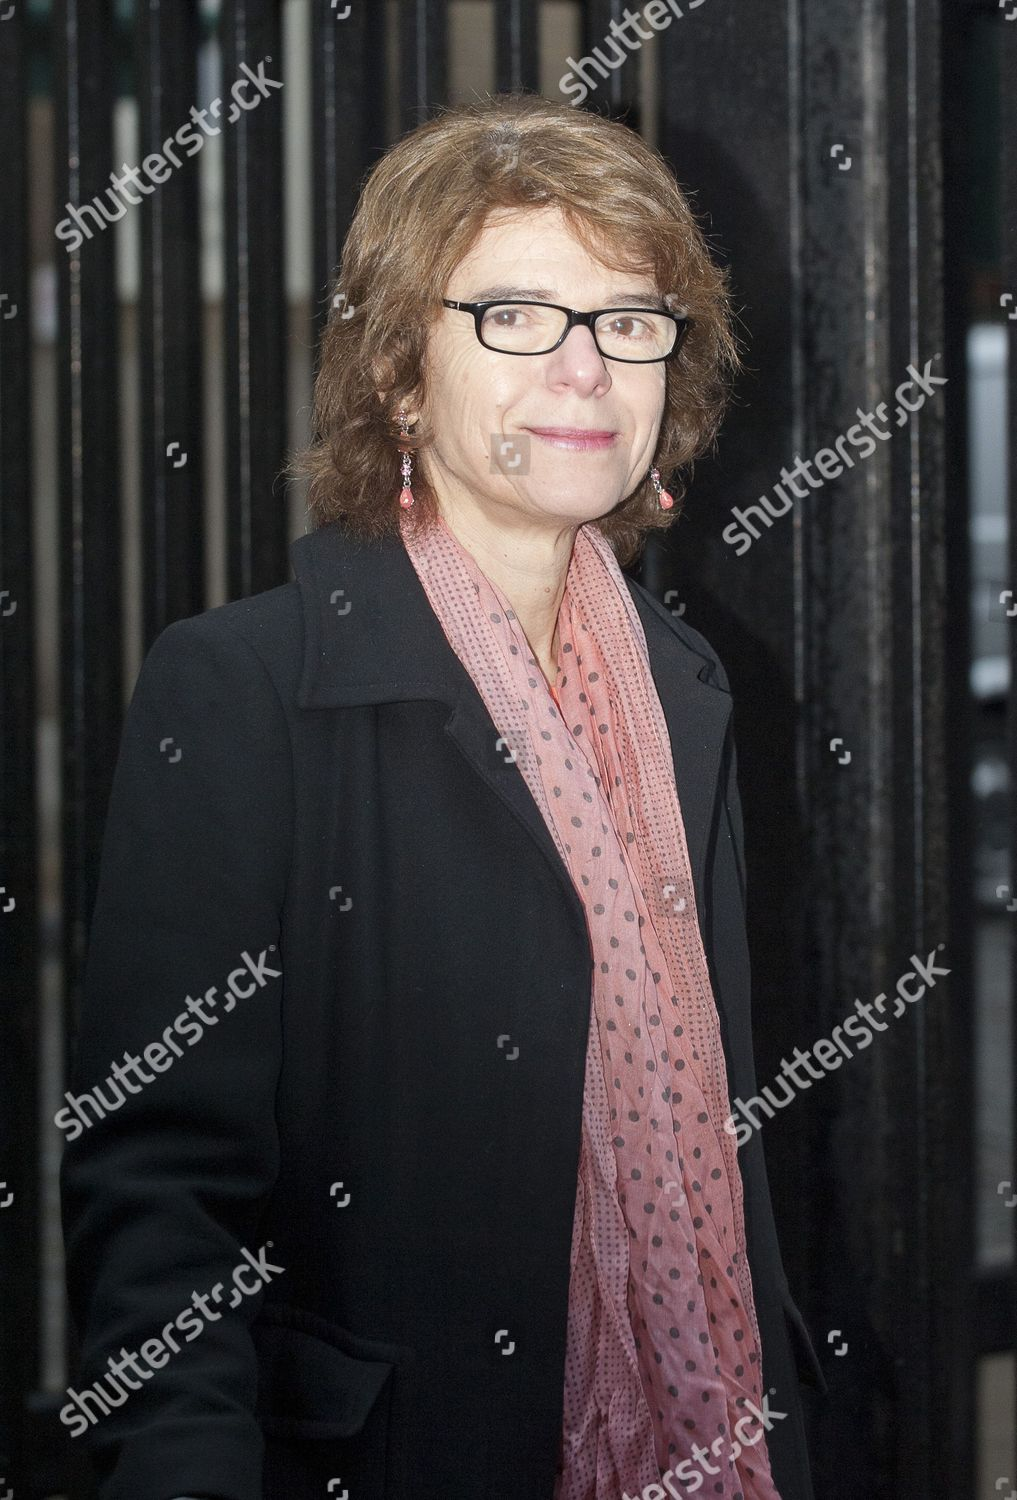 Vicky Pryce Former Wife Disgraced Mp Chris Editorial Stock Photo Stock Image Shutterstock